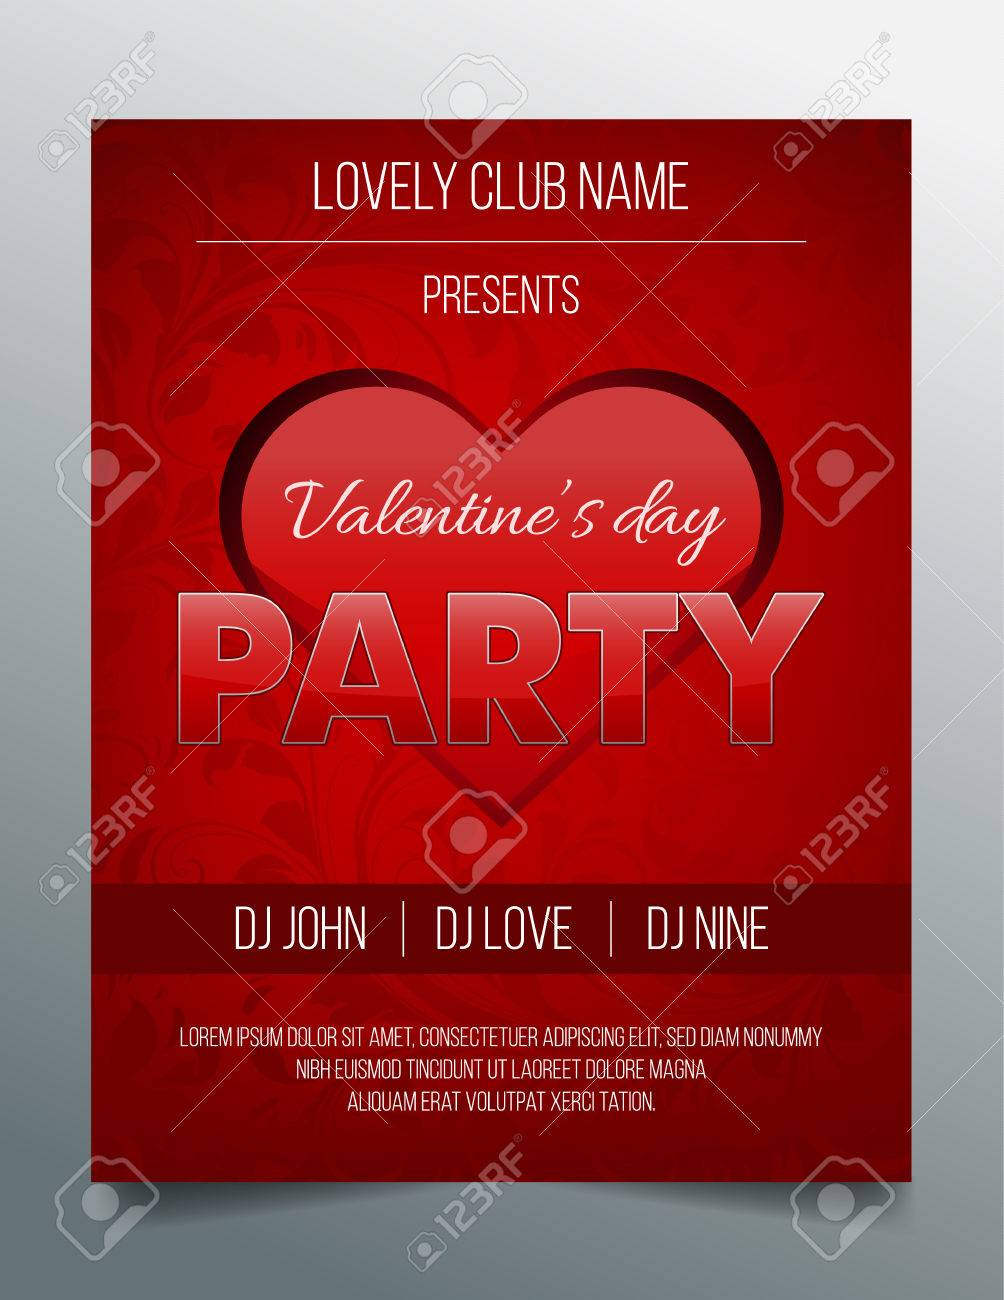 Valentines Day Party Flyer - Red And Black Design Royalty Free ...